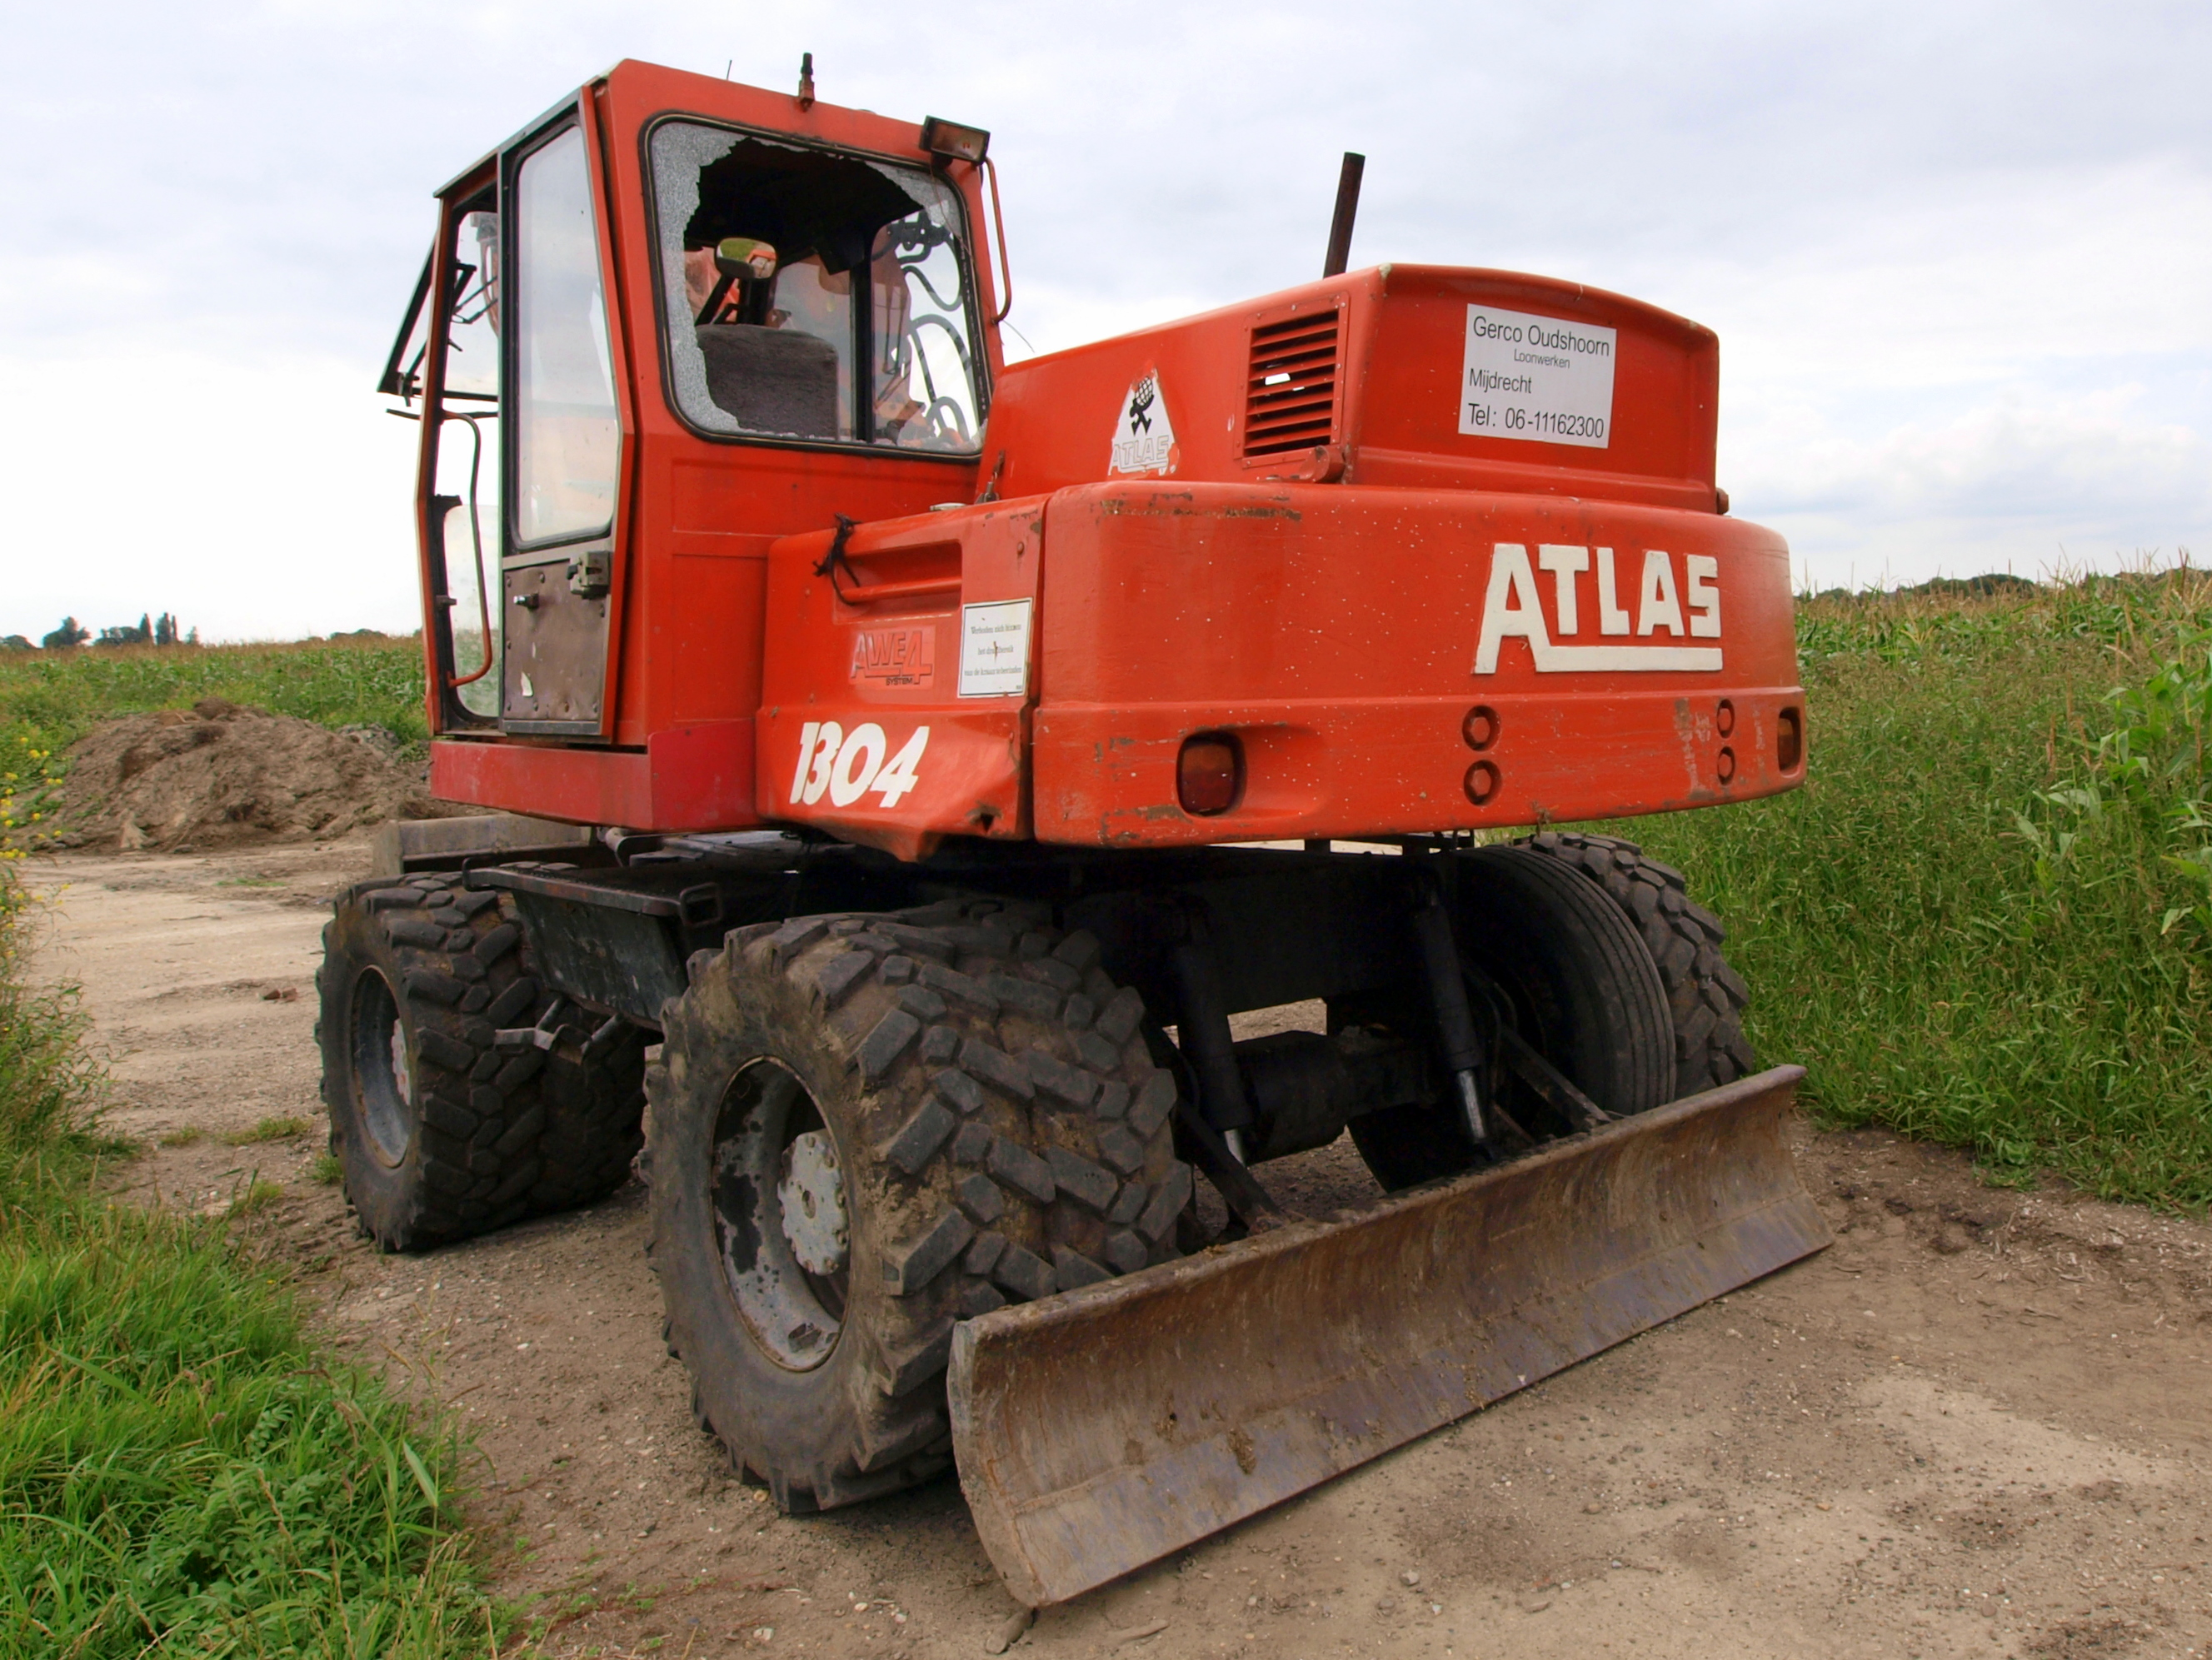 File:Atlas 1304 p1.JPG